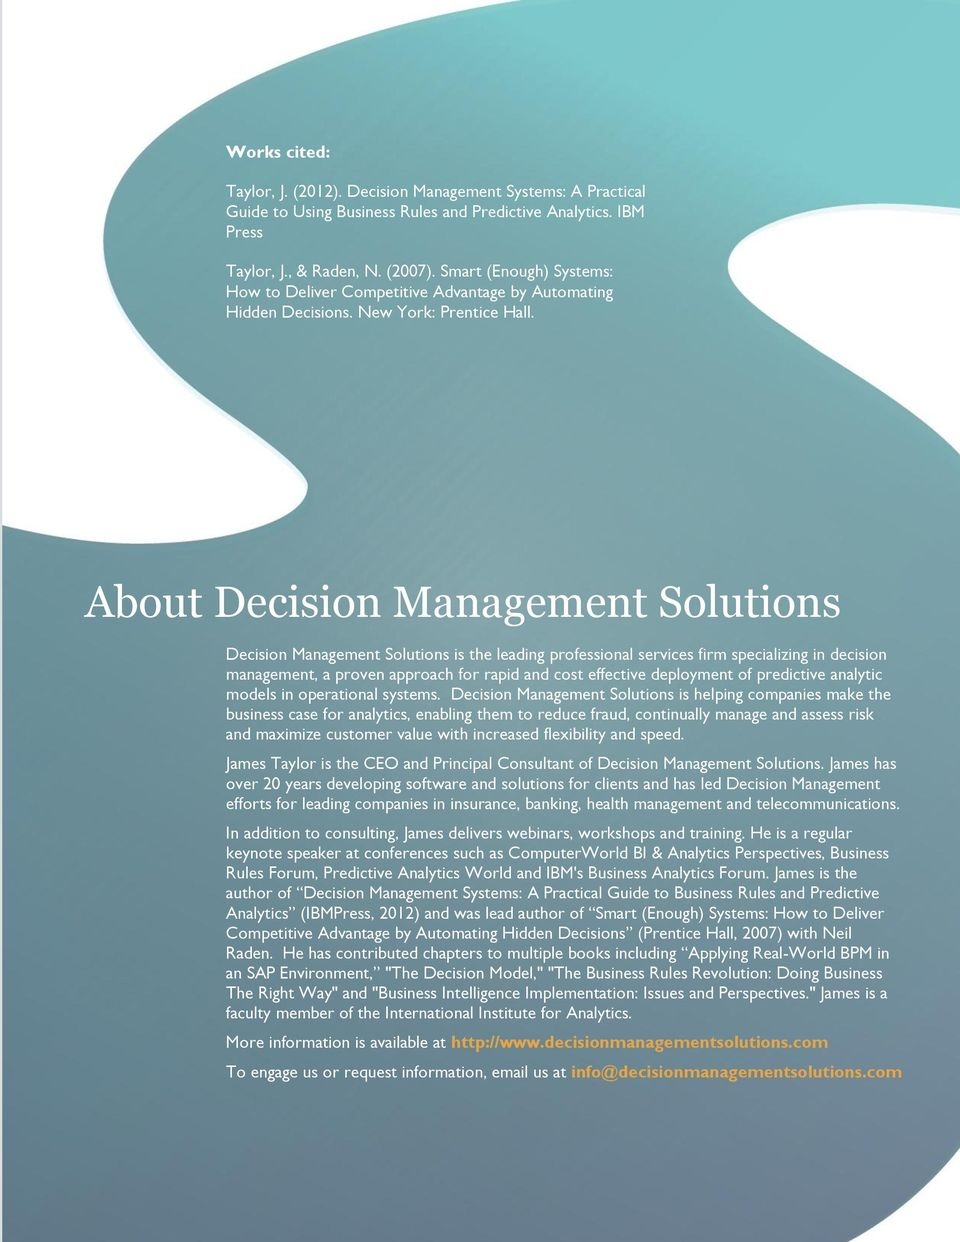 About Decision Management Solutions Decision Management Solutions is the leading professional services firm specializing in decision management, a proven approach for rapid and cost effective